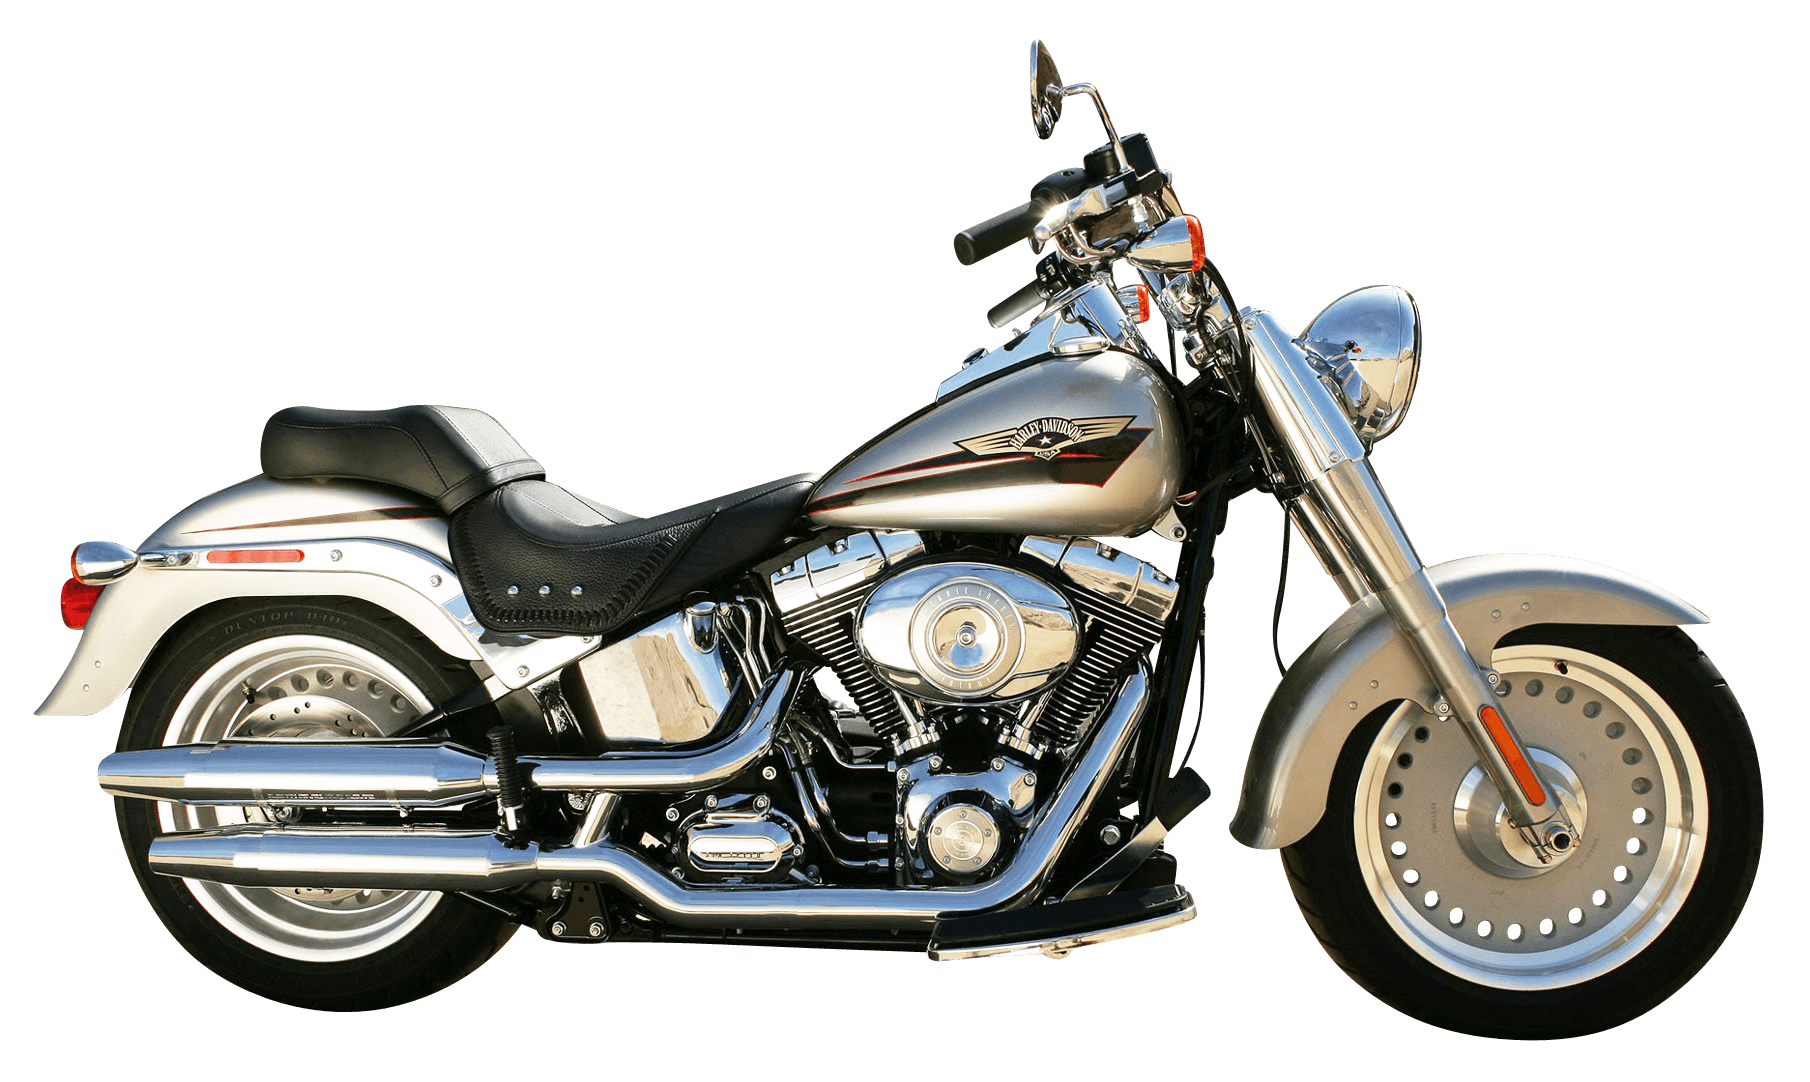 banner black and white download Motorbike transparent png stickpng. Motorcycle clipart motorcycle harley davidson.